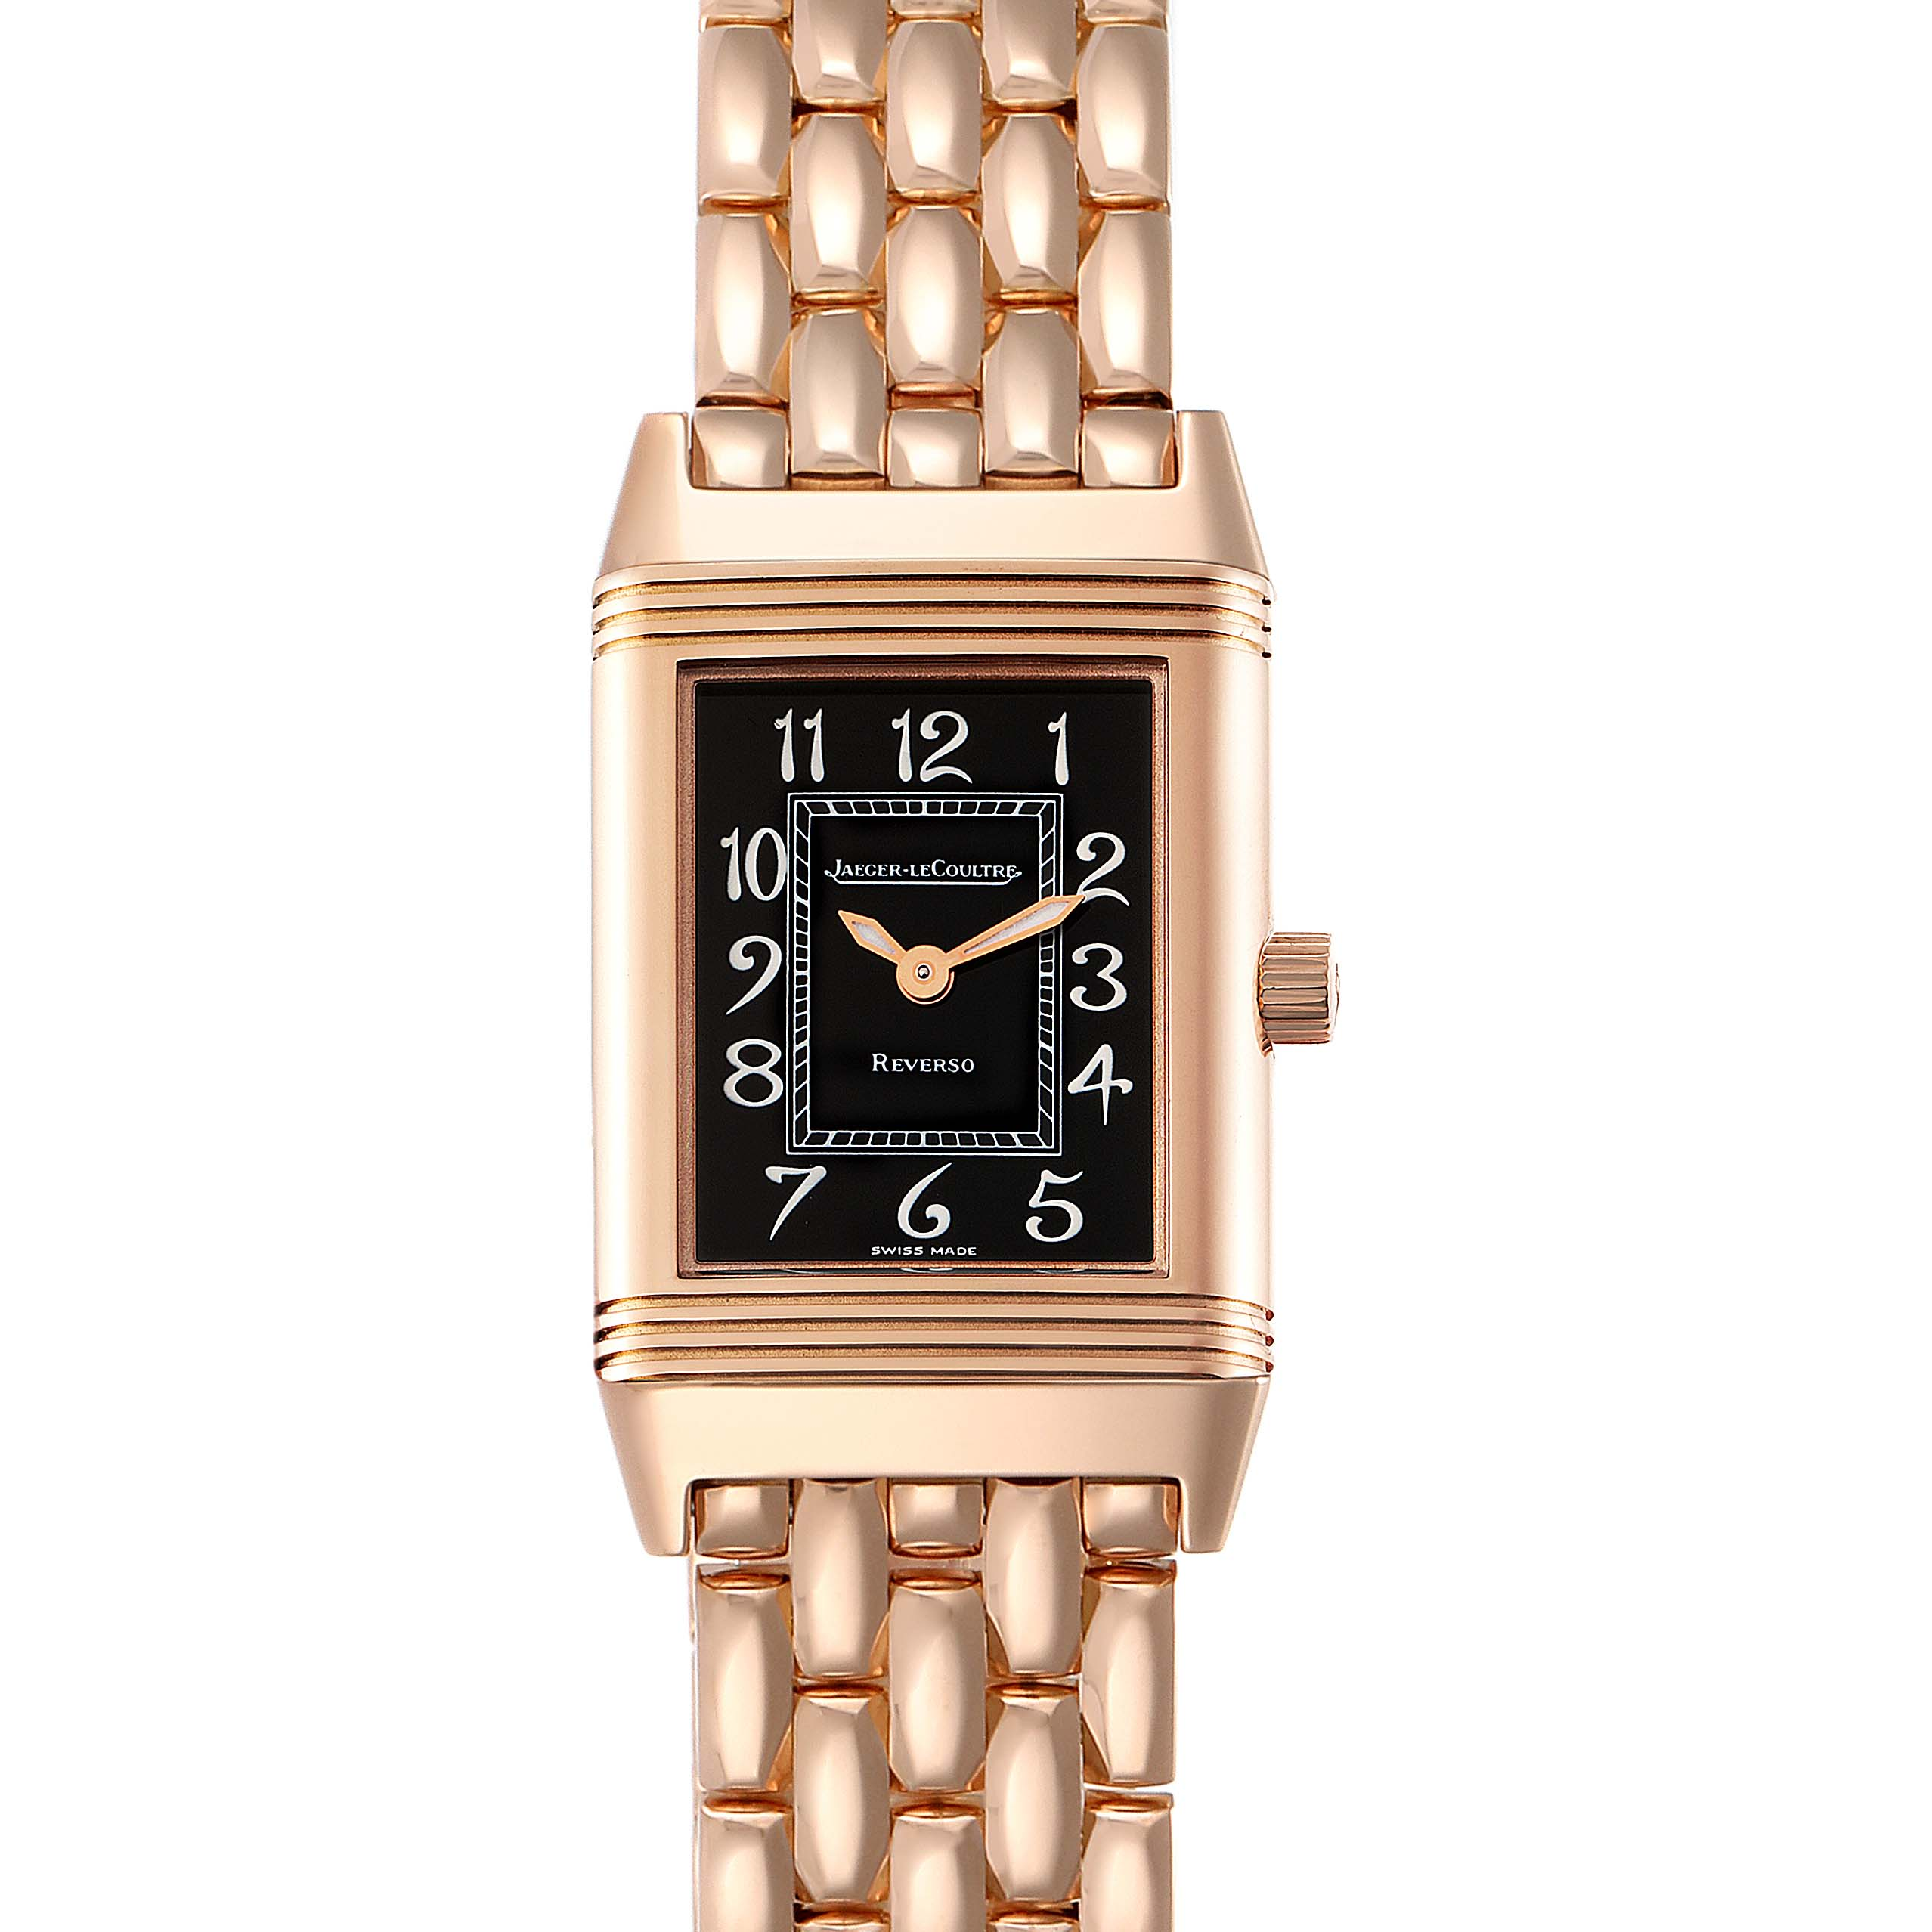 Jaeger LeCoultre Reverso Rose Gold Ladies Watch 260.2.86 Box Papers